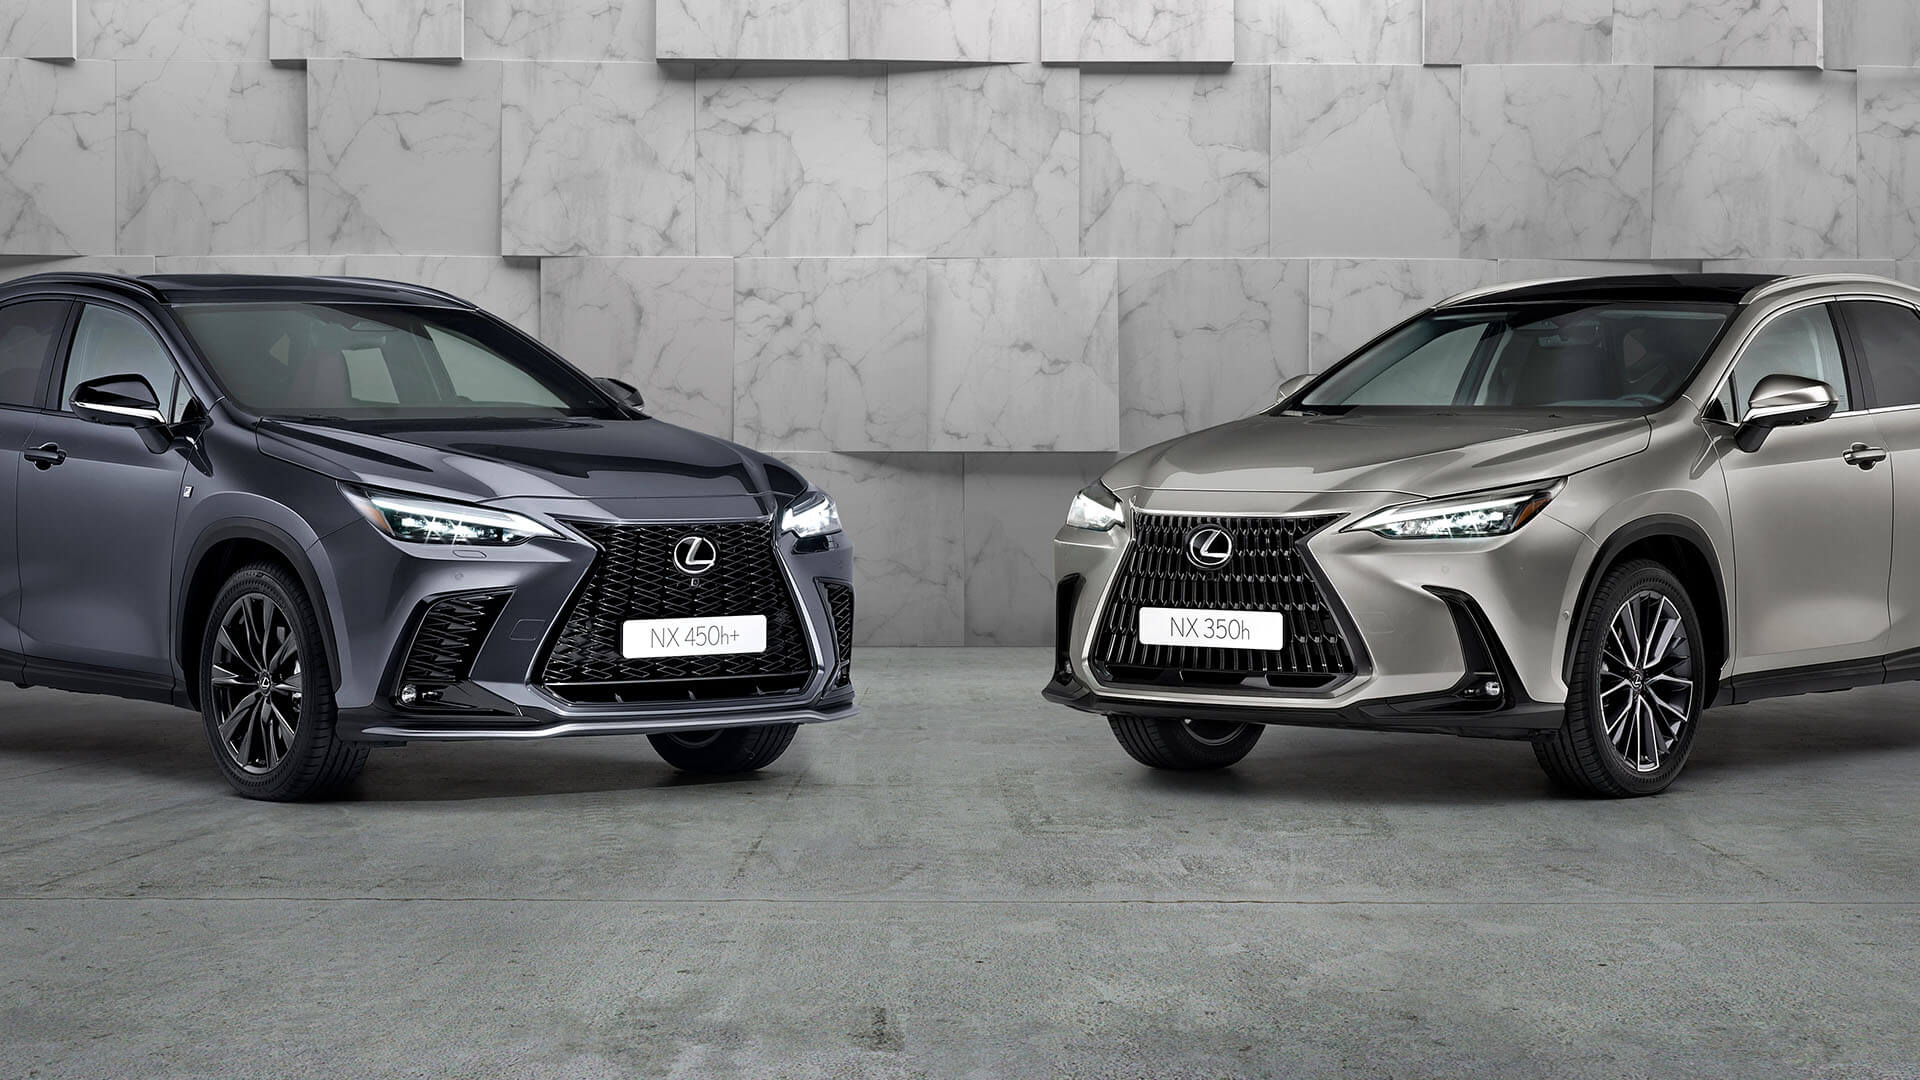 2021 lexus nx experience exterior front class leading hybrid